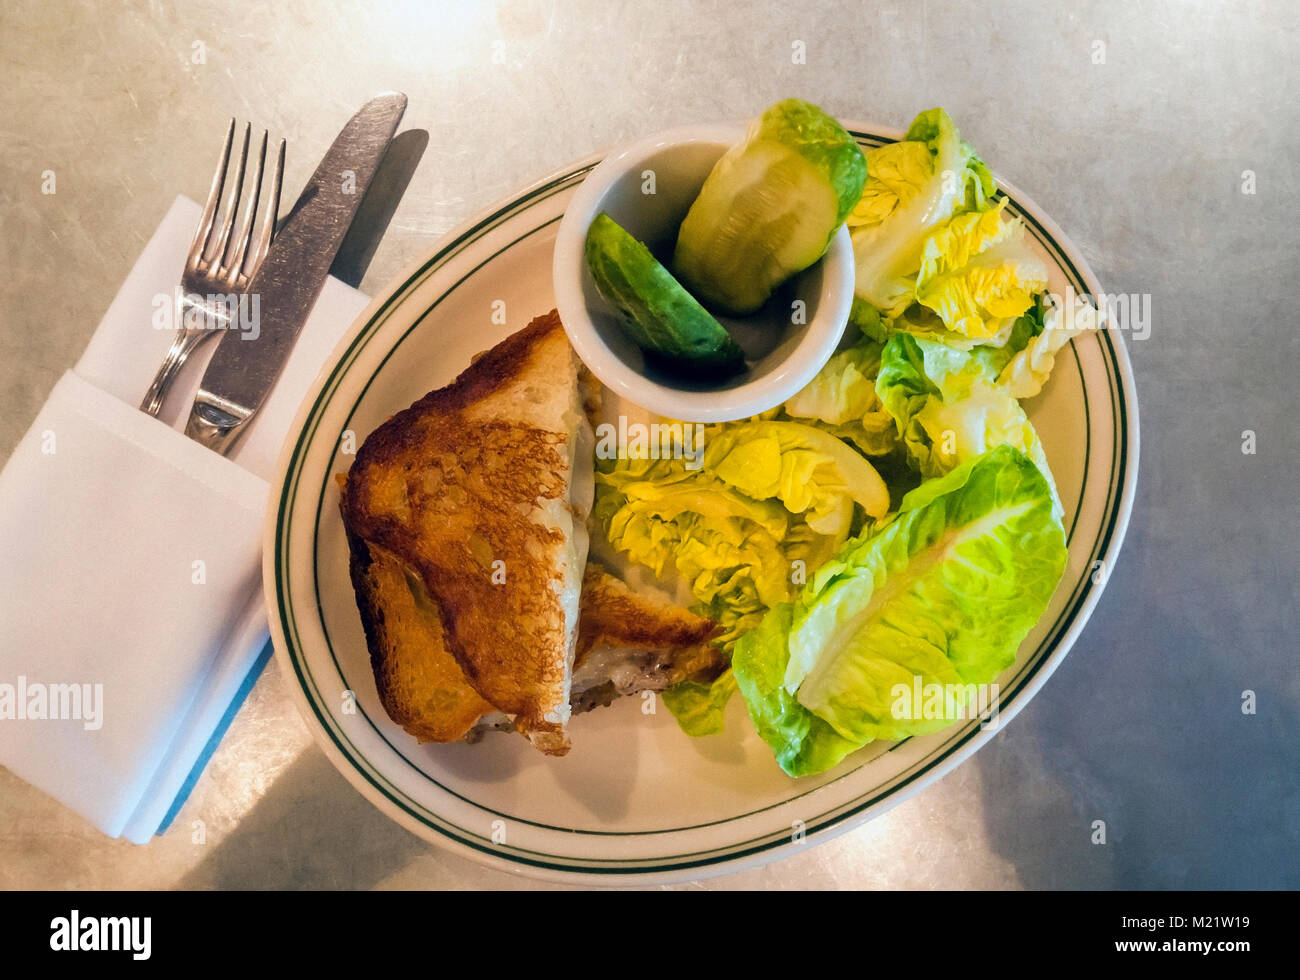 French onion sandwich with salad at Houseman in SoHo, New York City - Stock Image